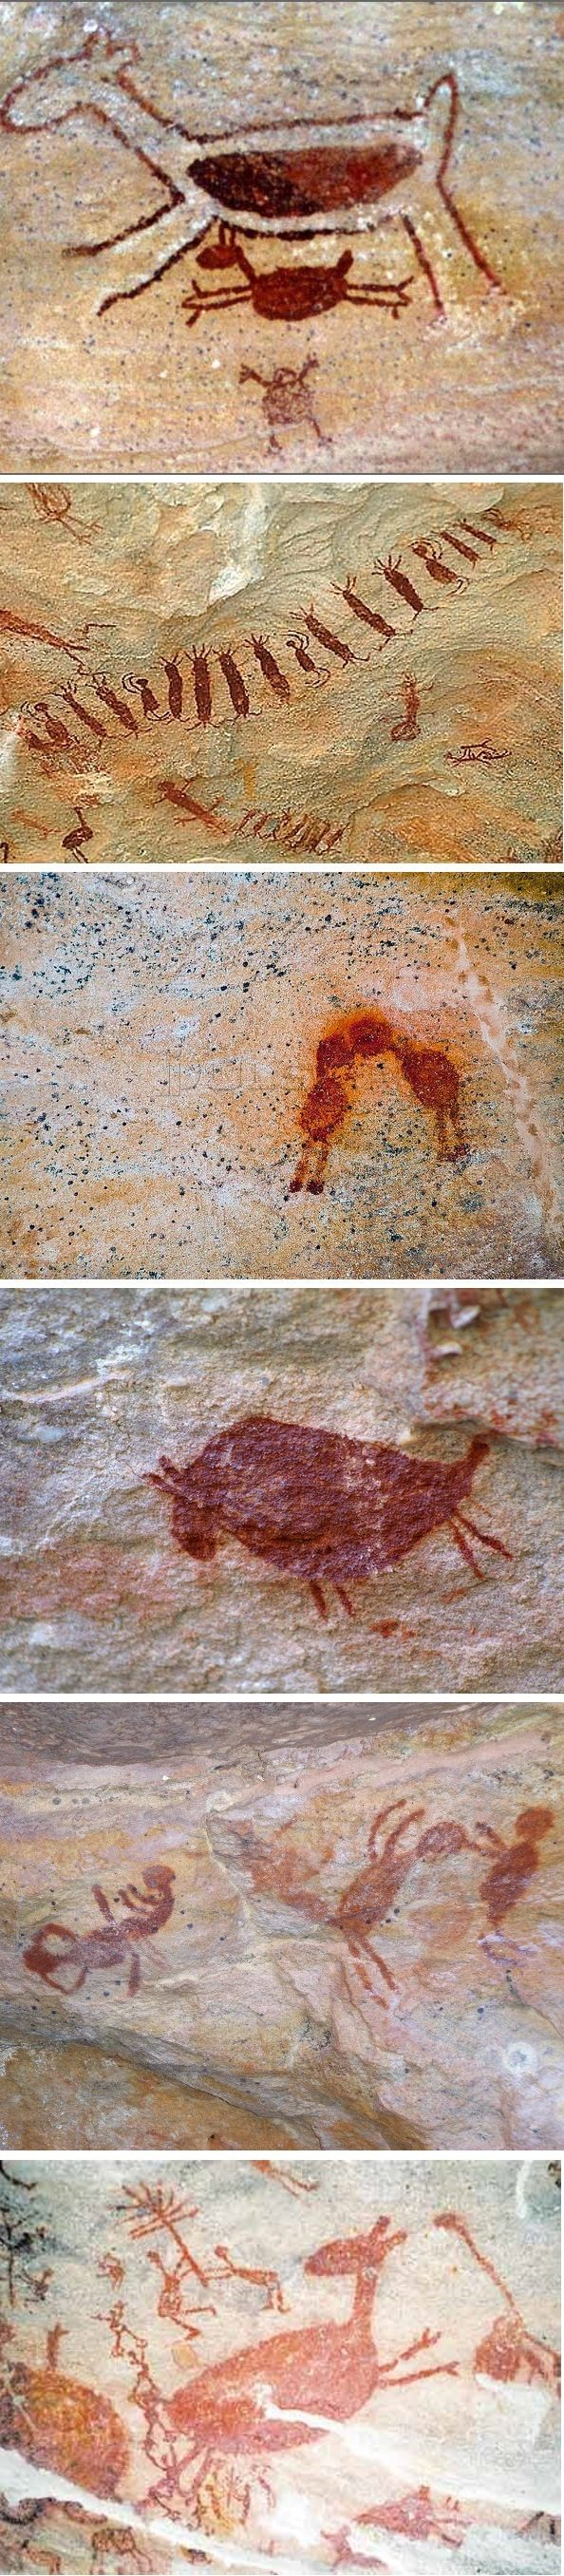 """The oldest reliably dated rock art in the Americas is known as the """"Horny Little Man."""" It is petroglyph depicting a stick figure with an oversized phallus and carved [painted?] in Lapa do Santo, a cave in central-eastern Brazil and dates from 12,000 to 9,000 years ago. Serra da Capivara National Park, a UNESCO World Heritage Site, Piauí."""